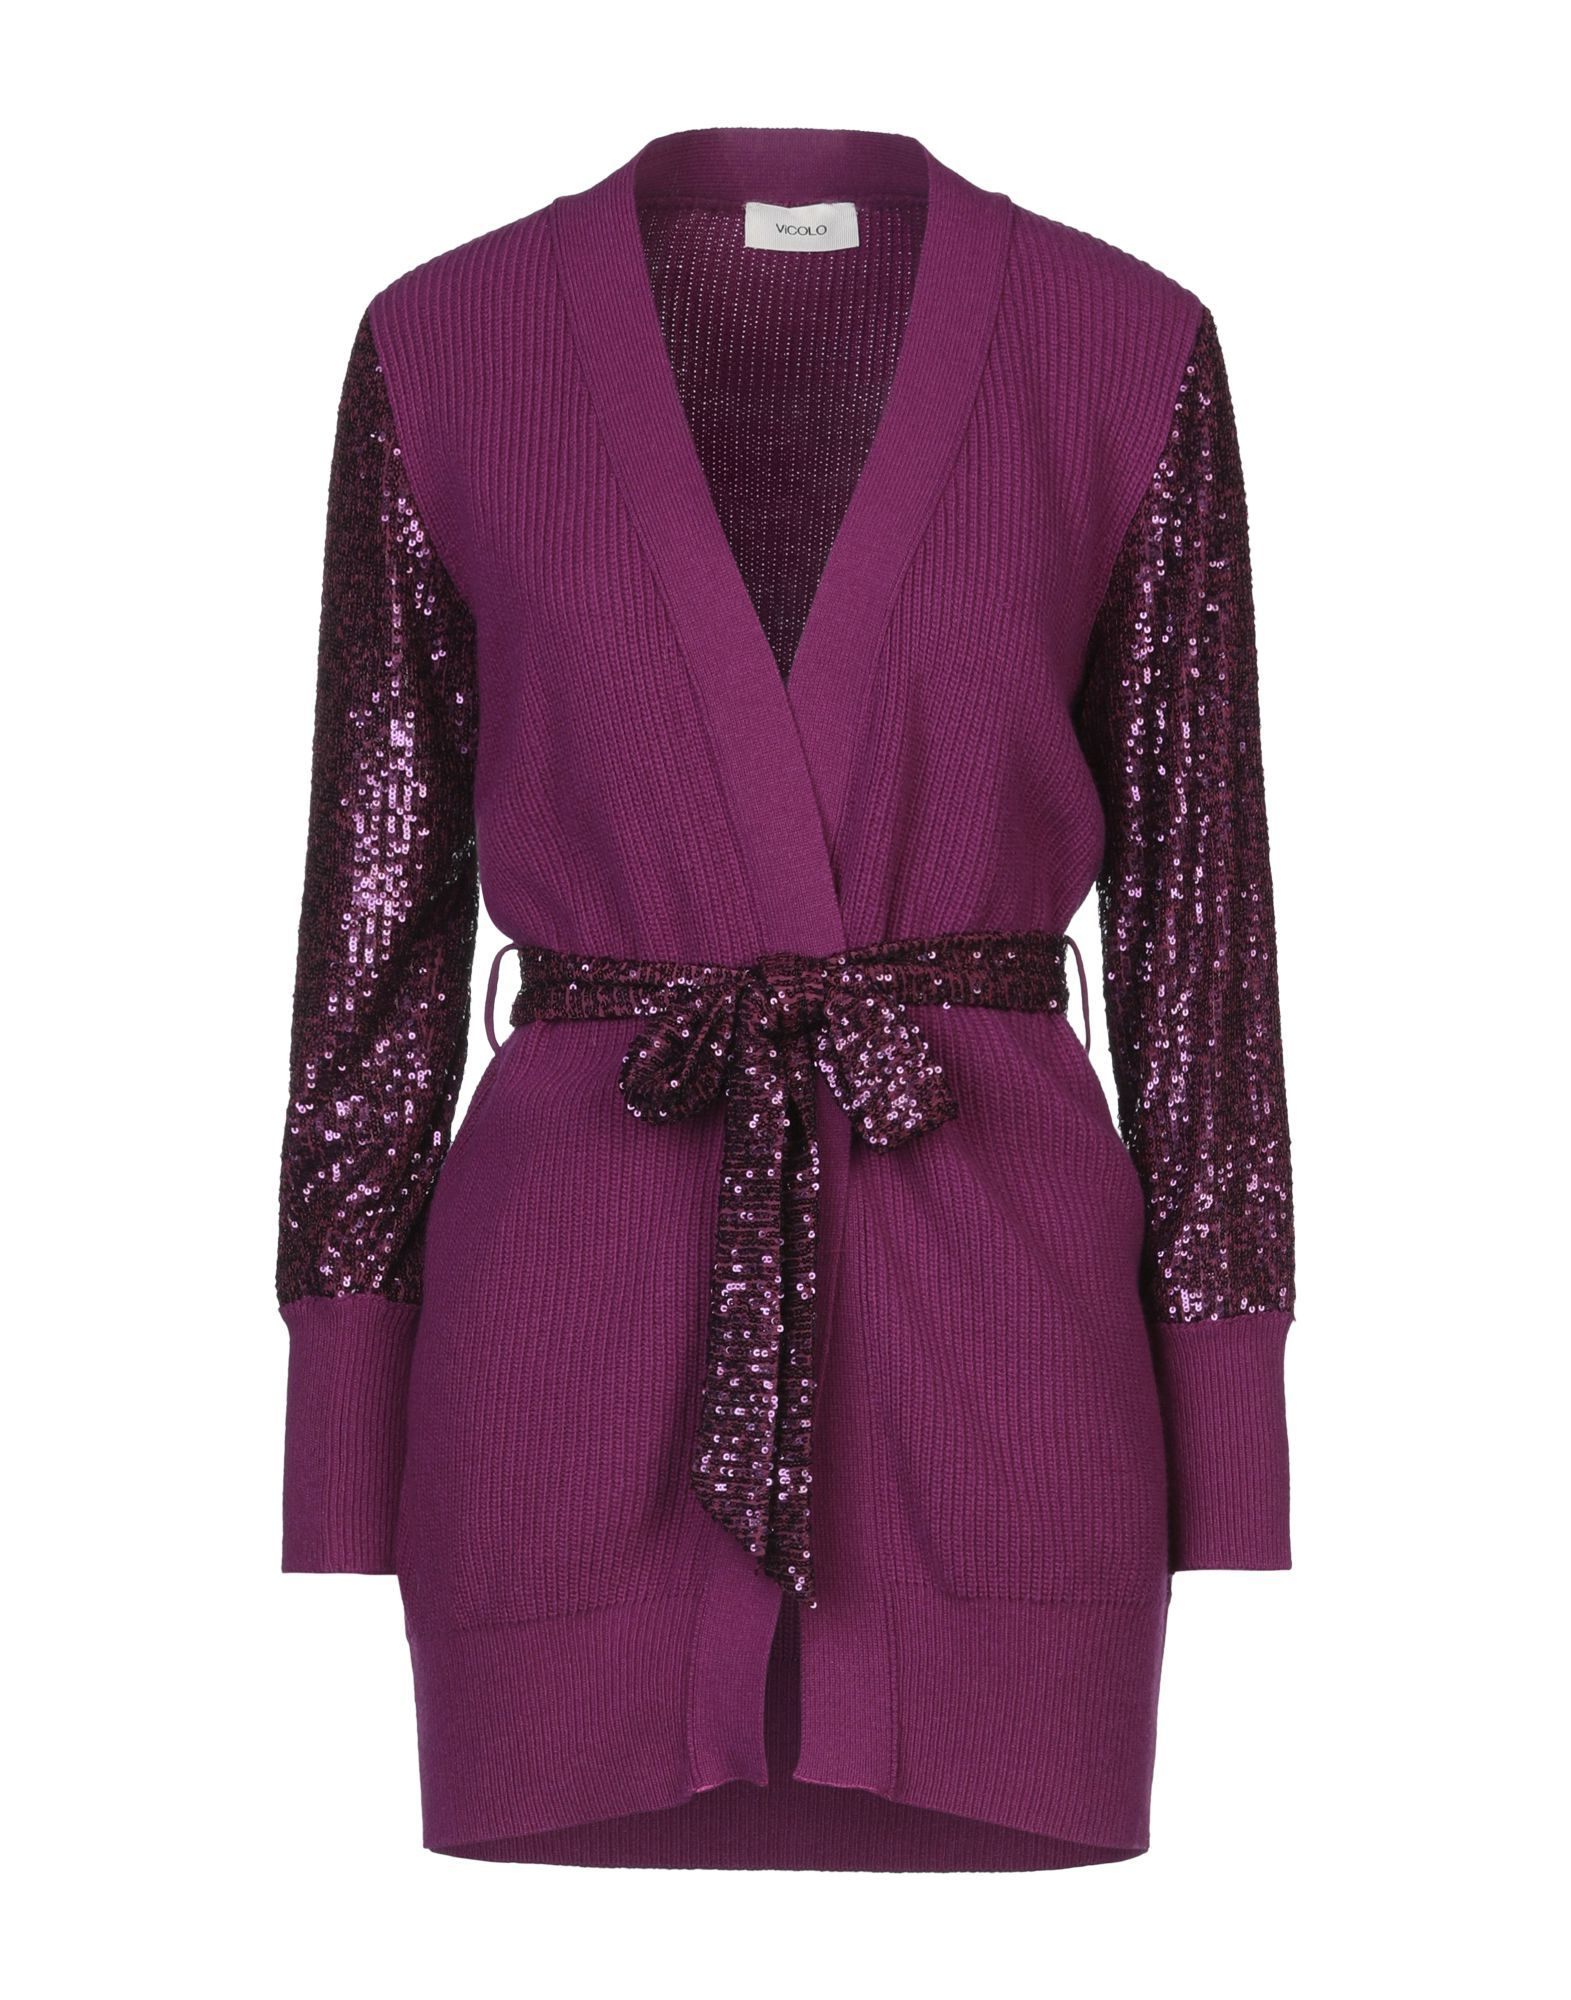 Vicolo Purple Knit Cardigan With Sequin Sleeves